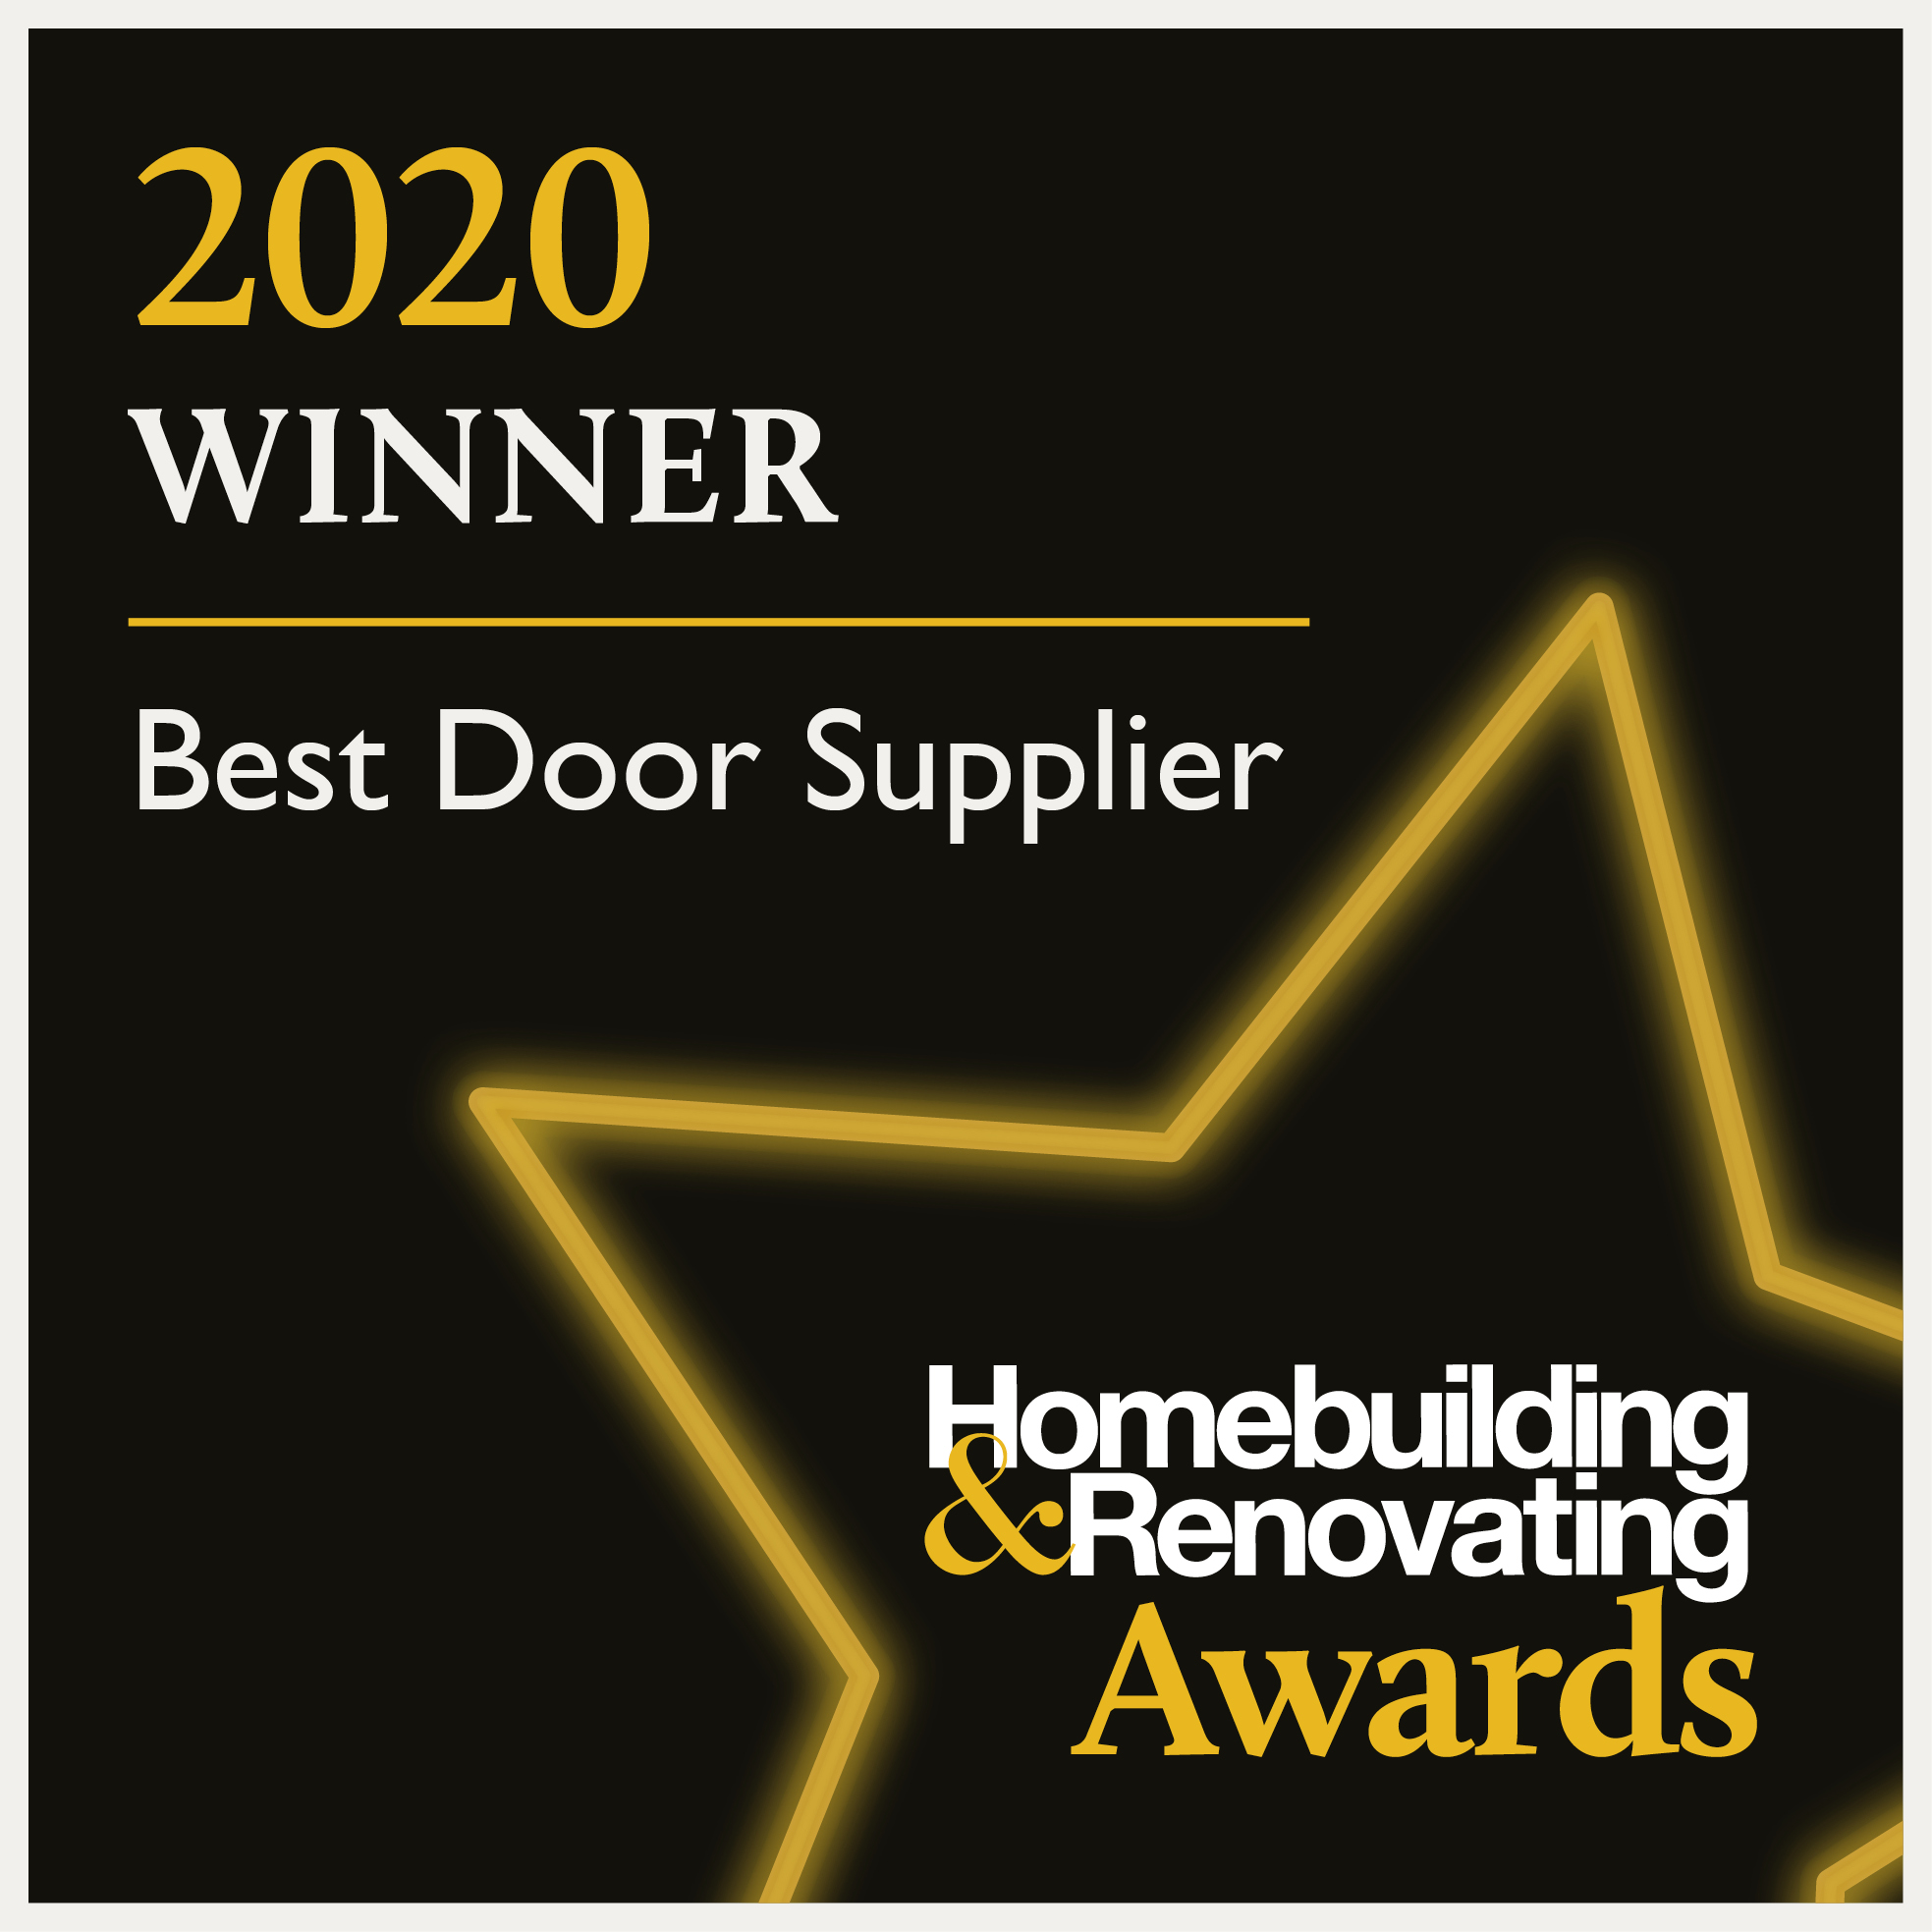 Homebuilding & Renovating award2